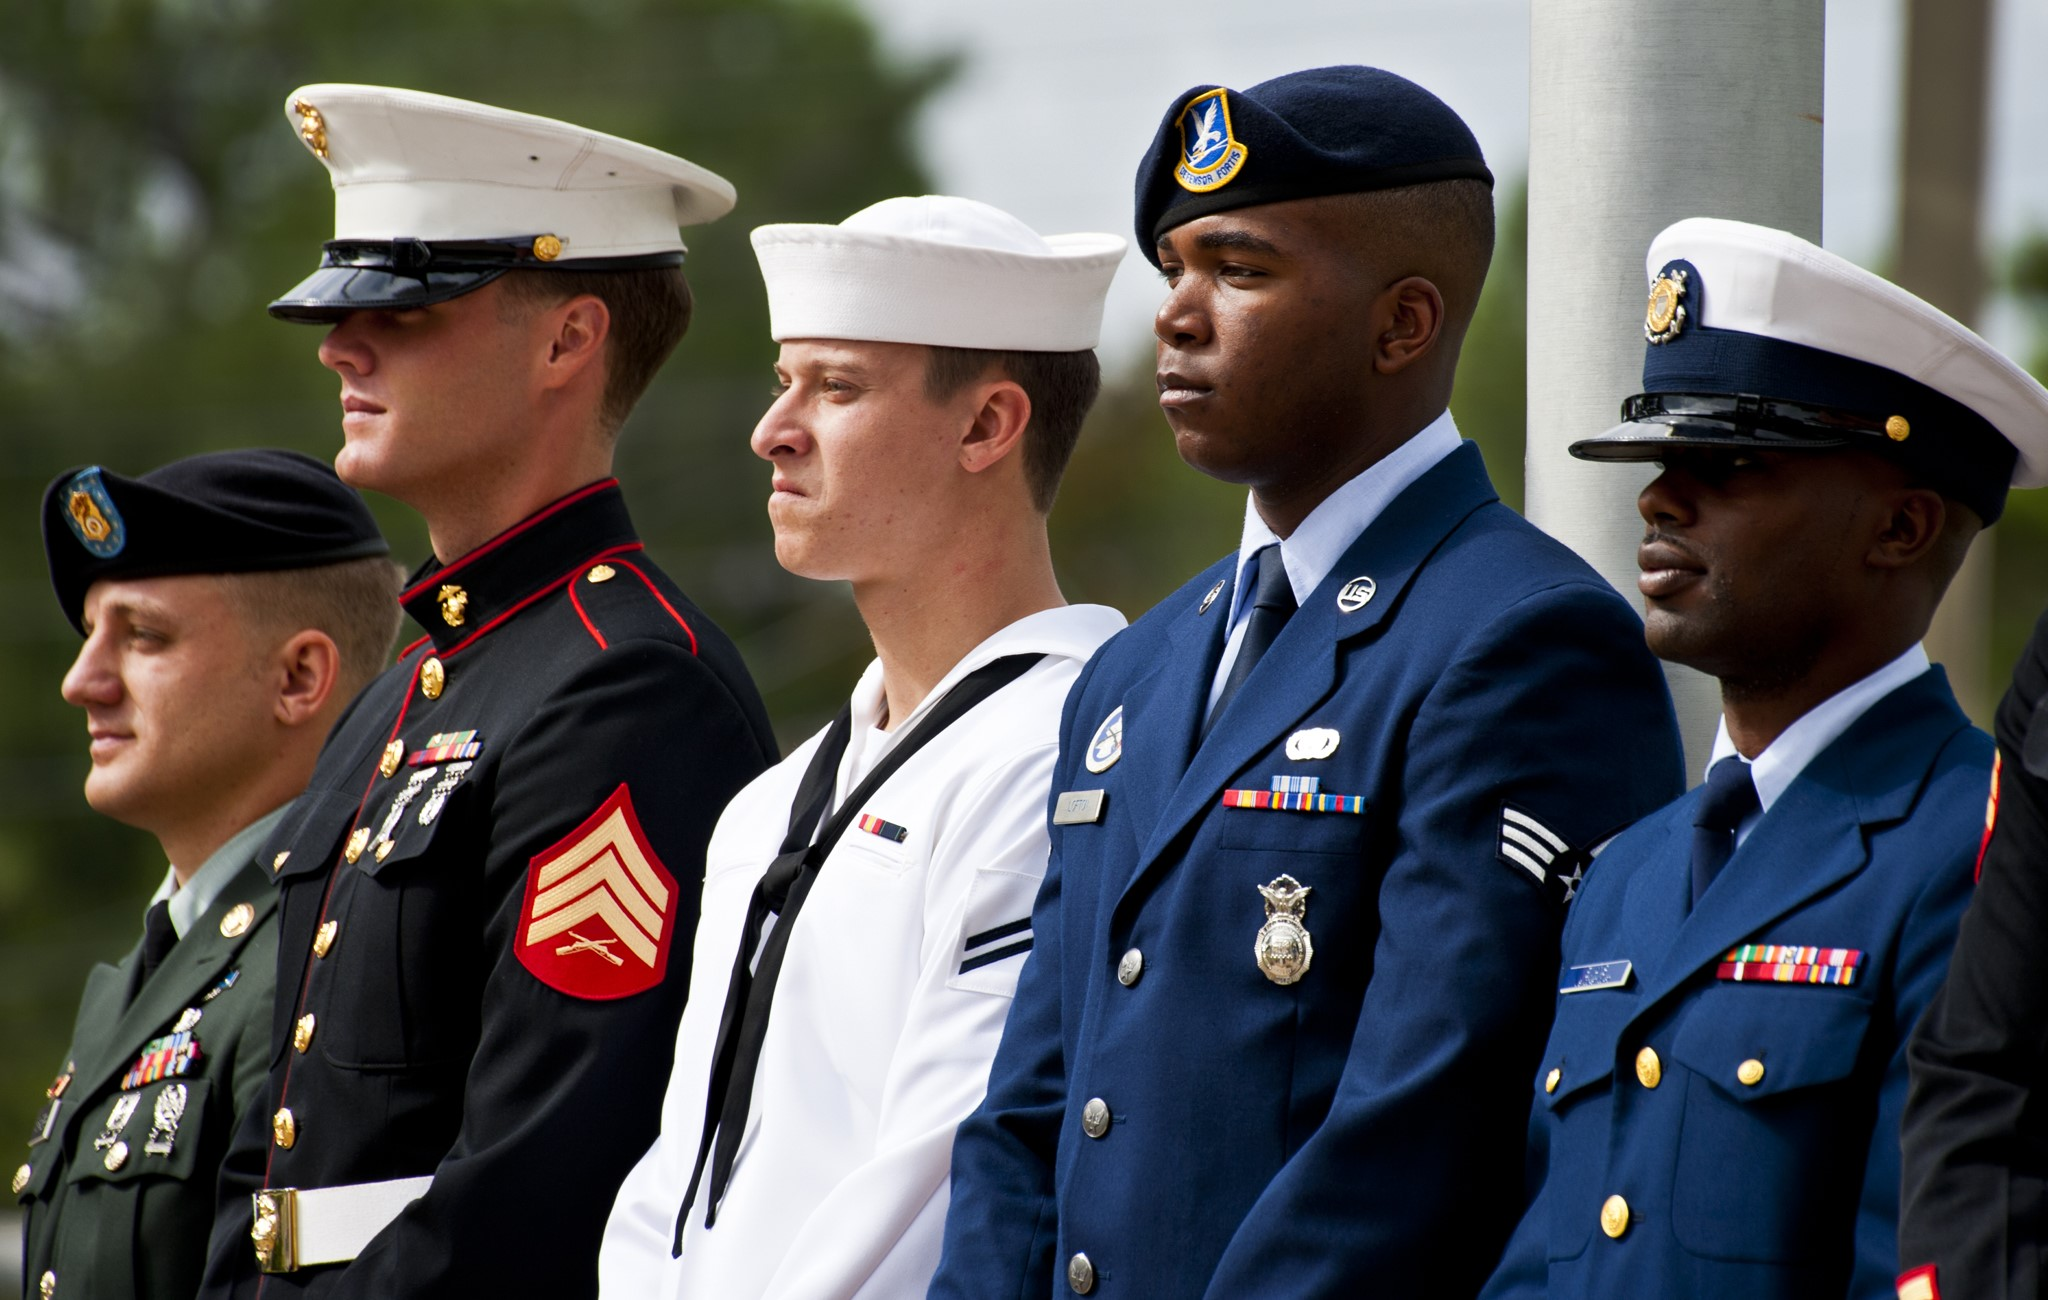 Racism in the military